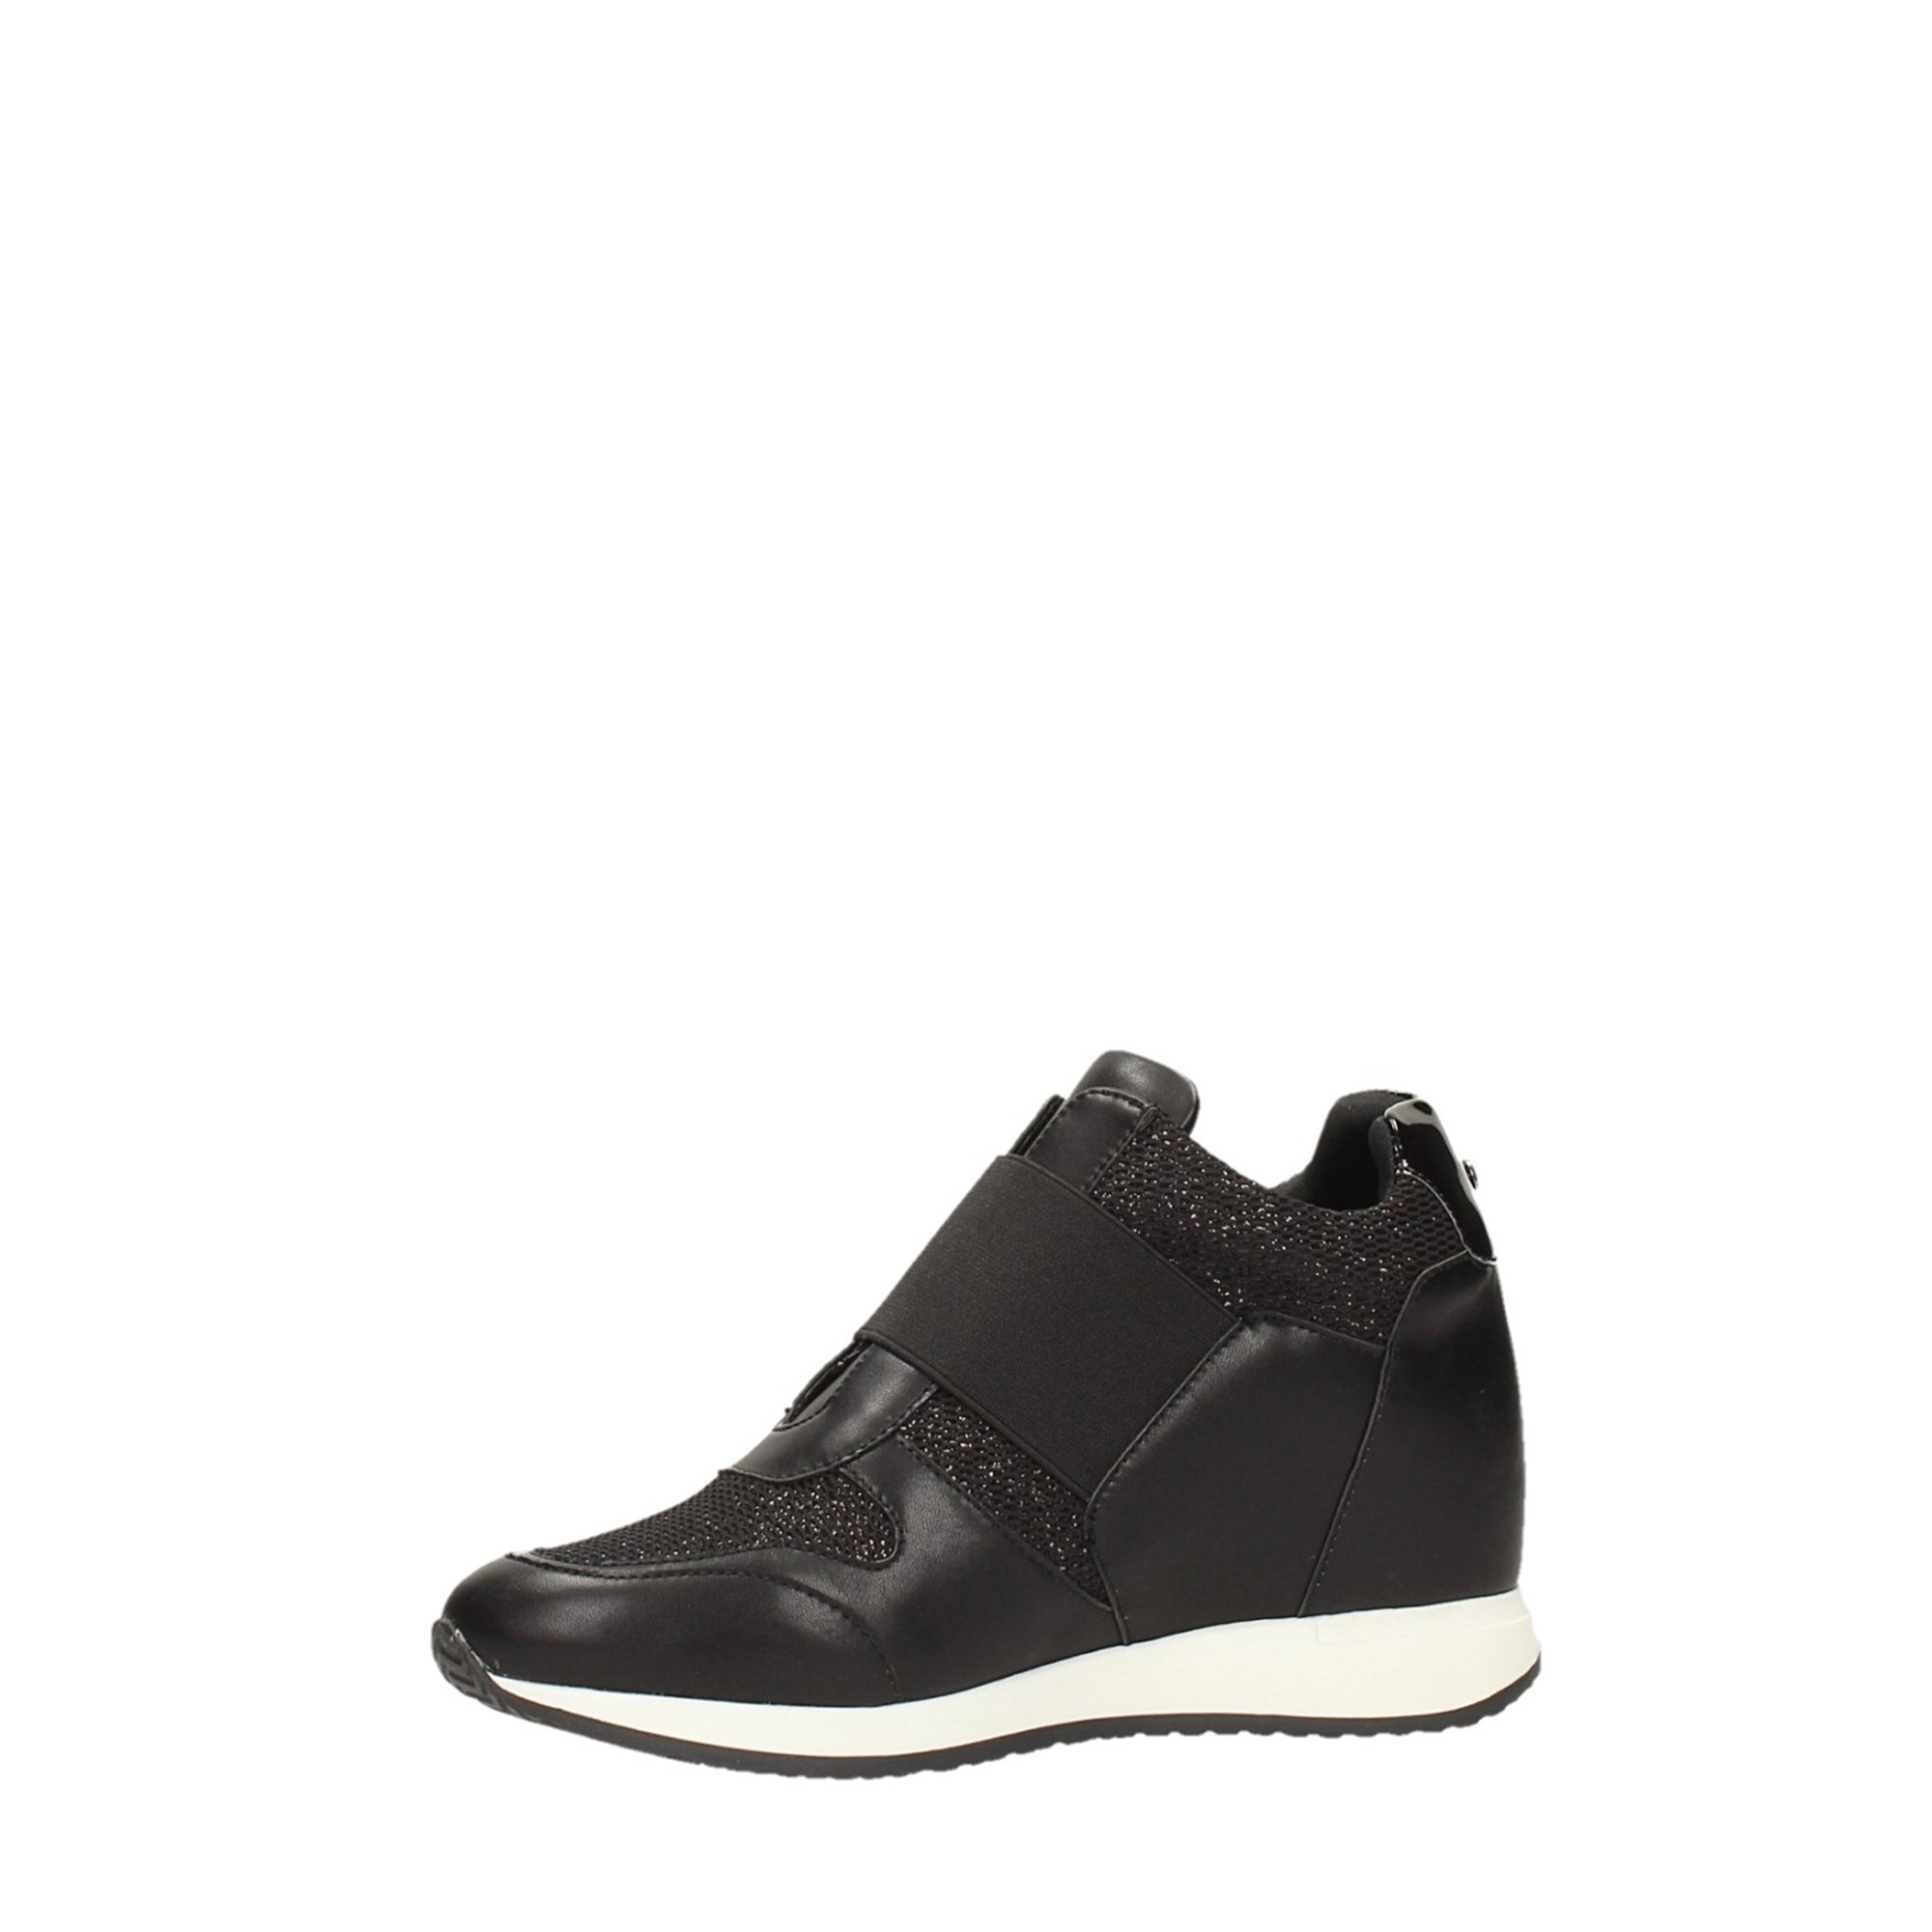 Tata Italia Shoes Woman Sneakers TA2A152-3